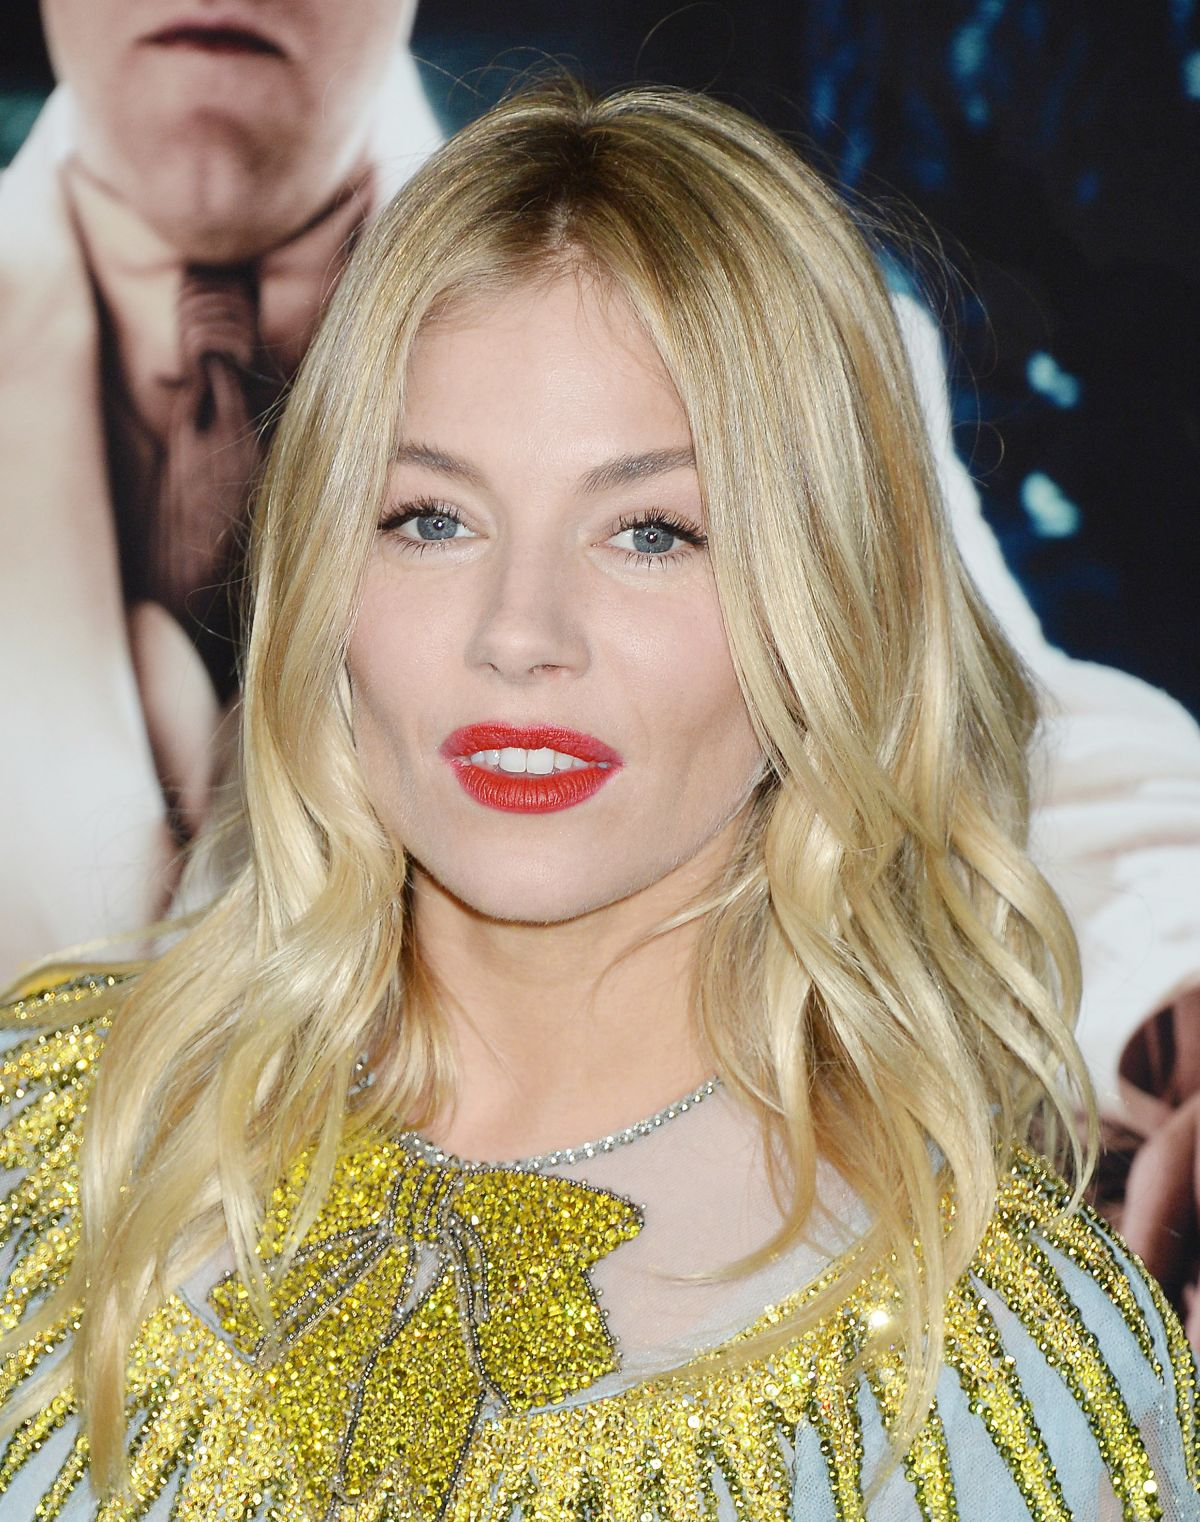 SIENNA MILLER at 'Live by Night' Premiere in Los Angeles ...